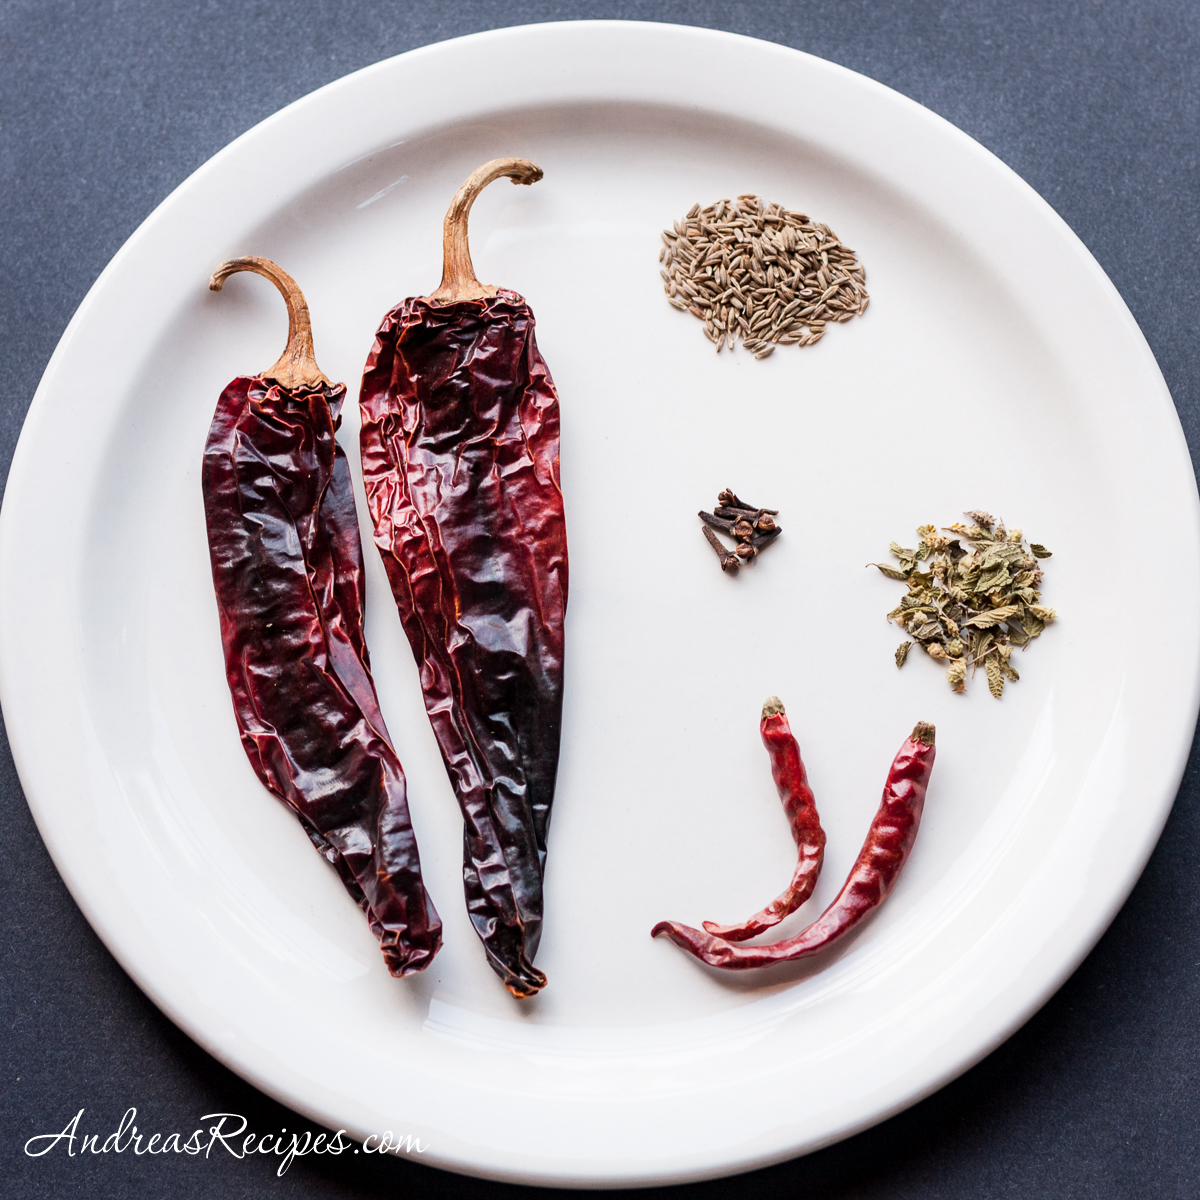 Spices for chicken adobo - Andrea Meyers